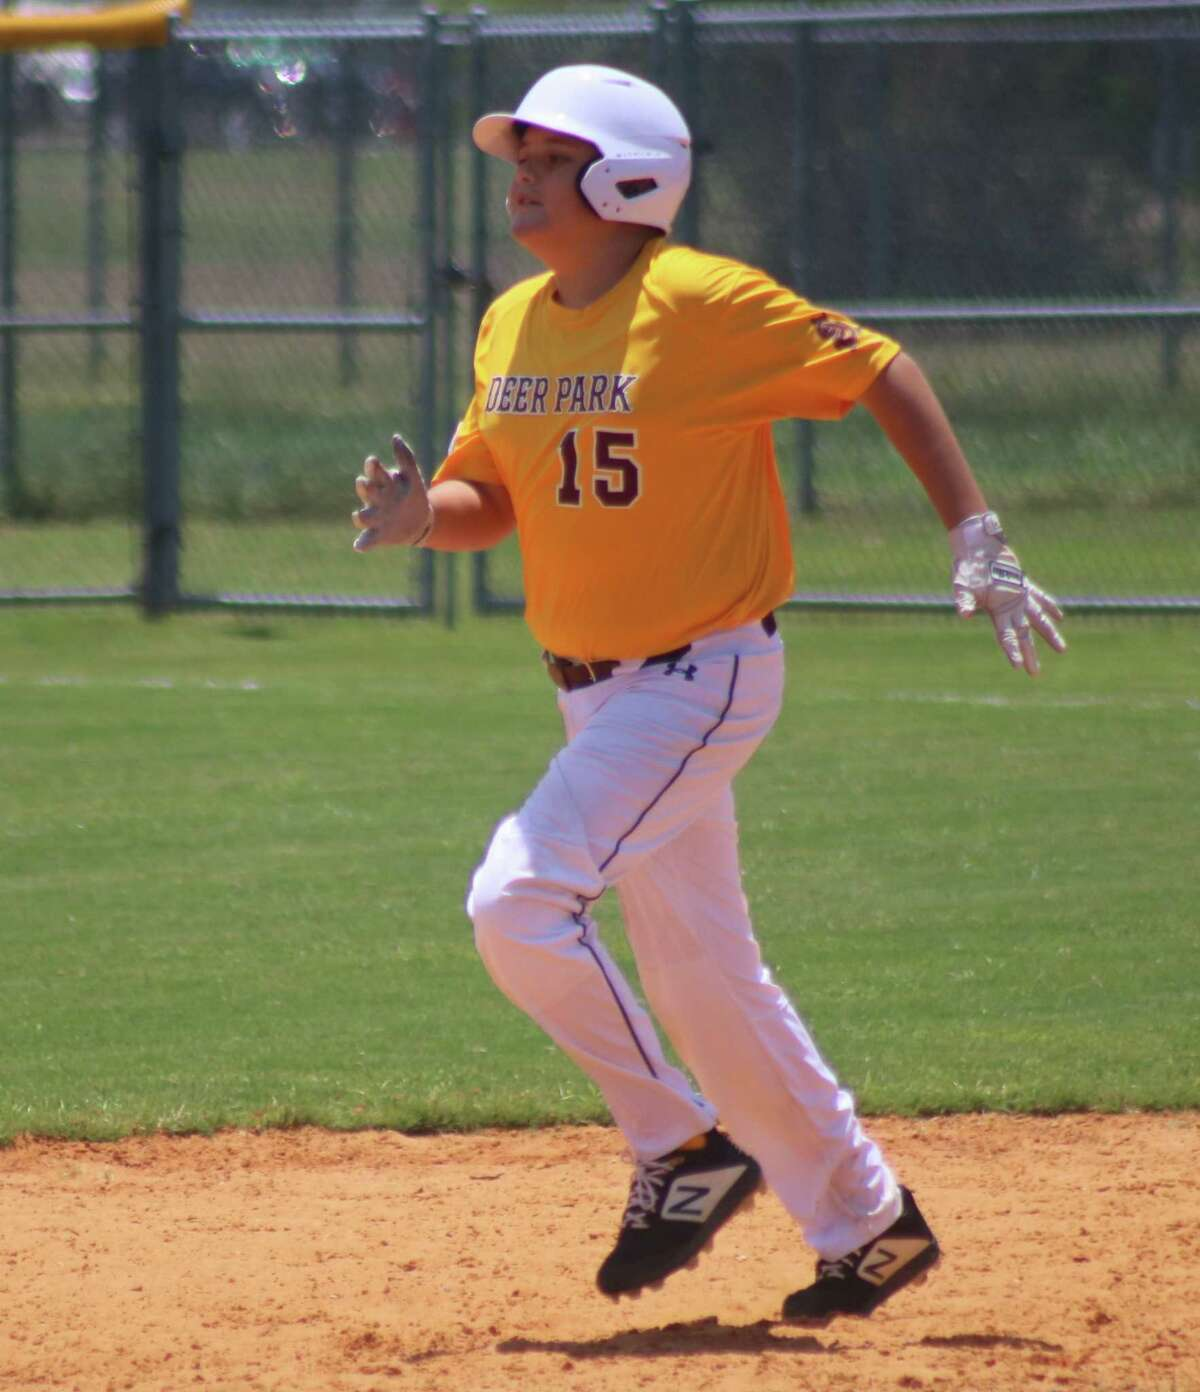 Maddox Atchley jogs into second base after hitting a double during this past weekend's Bronco South Zone Tournament. Less than four months after having brain surgery, Maddox helped Deer Park earn the No. 2 seed after two days of pool play.